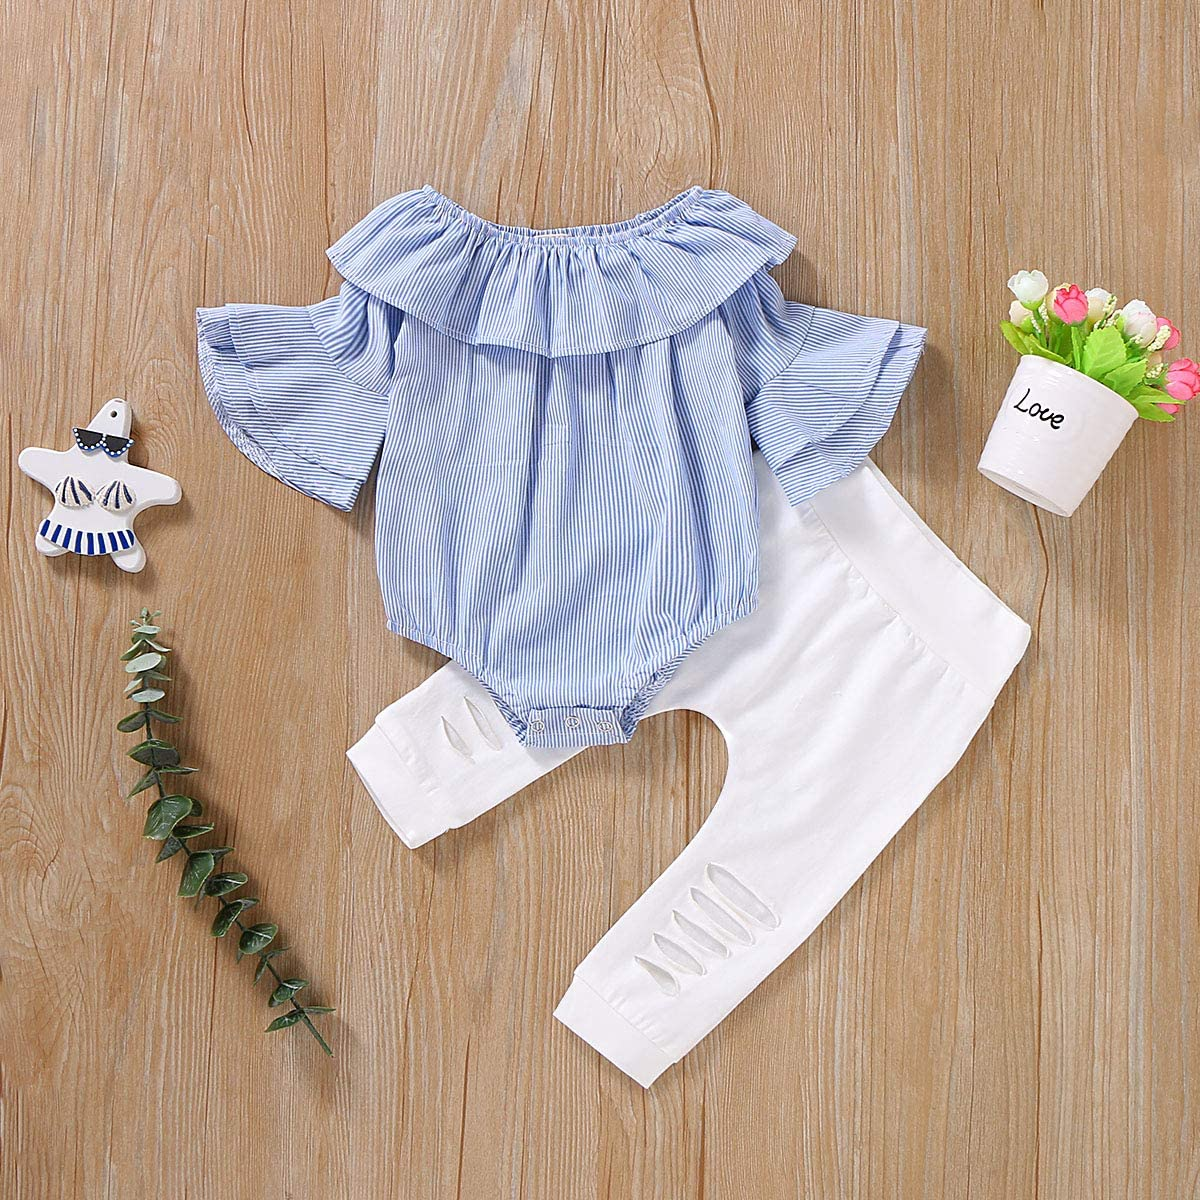 SANMIO Toddler Baby Girl Clothes Fall Sets Newborn Ruffle Romper Jumpsuit Tops Floral Halen Pants Outfit Set